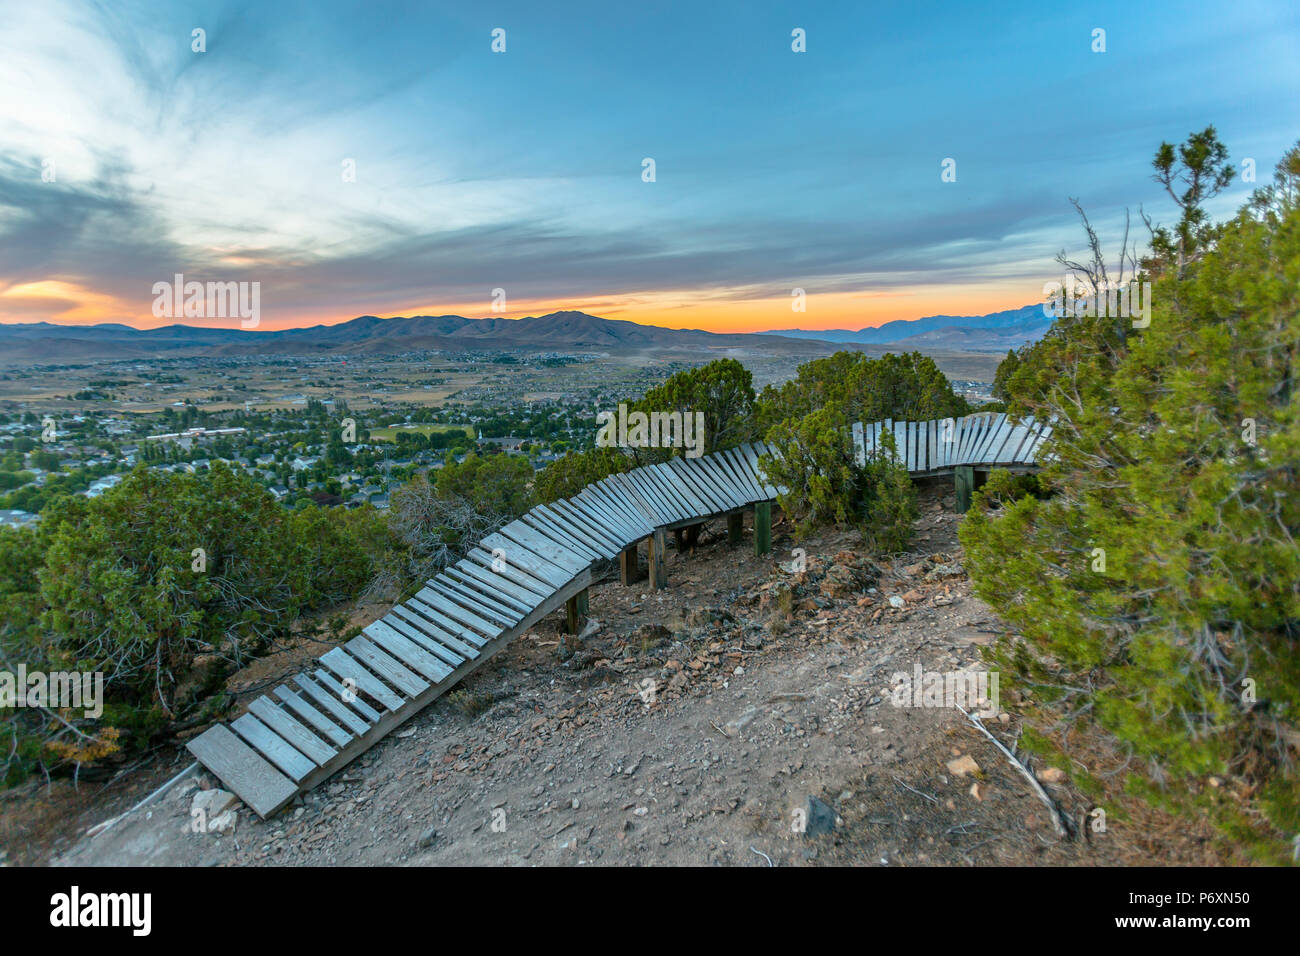 Bike feature on trail in mountians - Stock Image